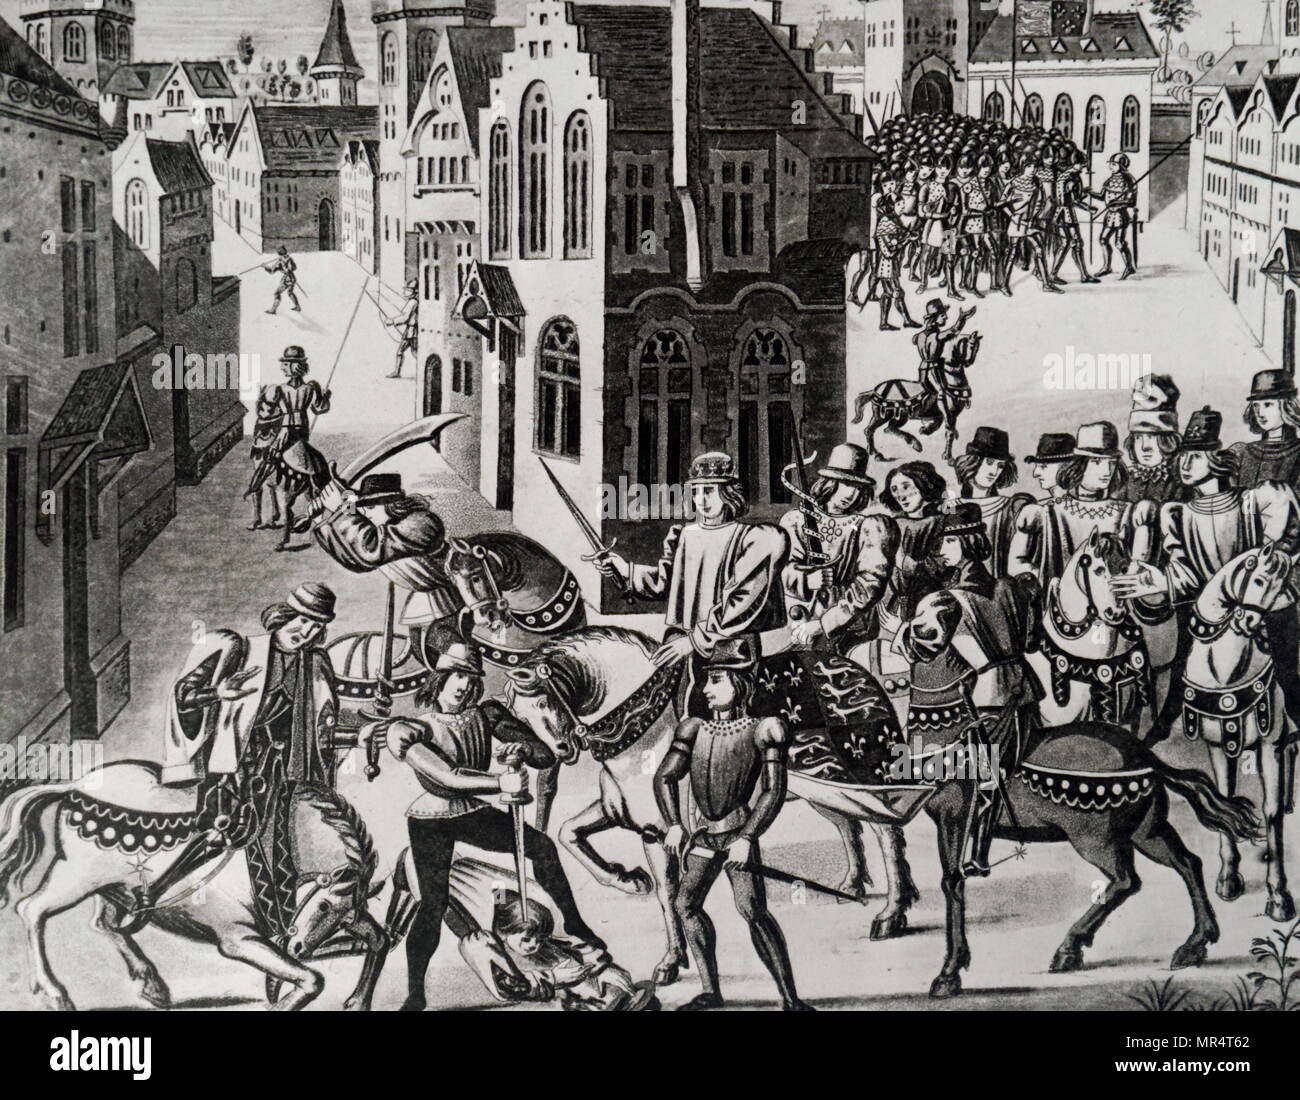 Engraving depicting William Walworth striking Wat Tyler as he speaks to Richard II at Smithfield. Tyler was taken to St Bartholomew's Hospital, but Walworth had him dragged out and beheaded. Sir William Walworth (d. 1385), was twice Lord Mayor of London, best known for killing Wat Tyler. Wat Tyler (1342-1381) leader of the 1381 Peasants' Revolt in England. Richard II of England (1367-1400) King of England. Dated 16th century - Stock Image